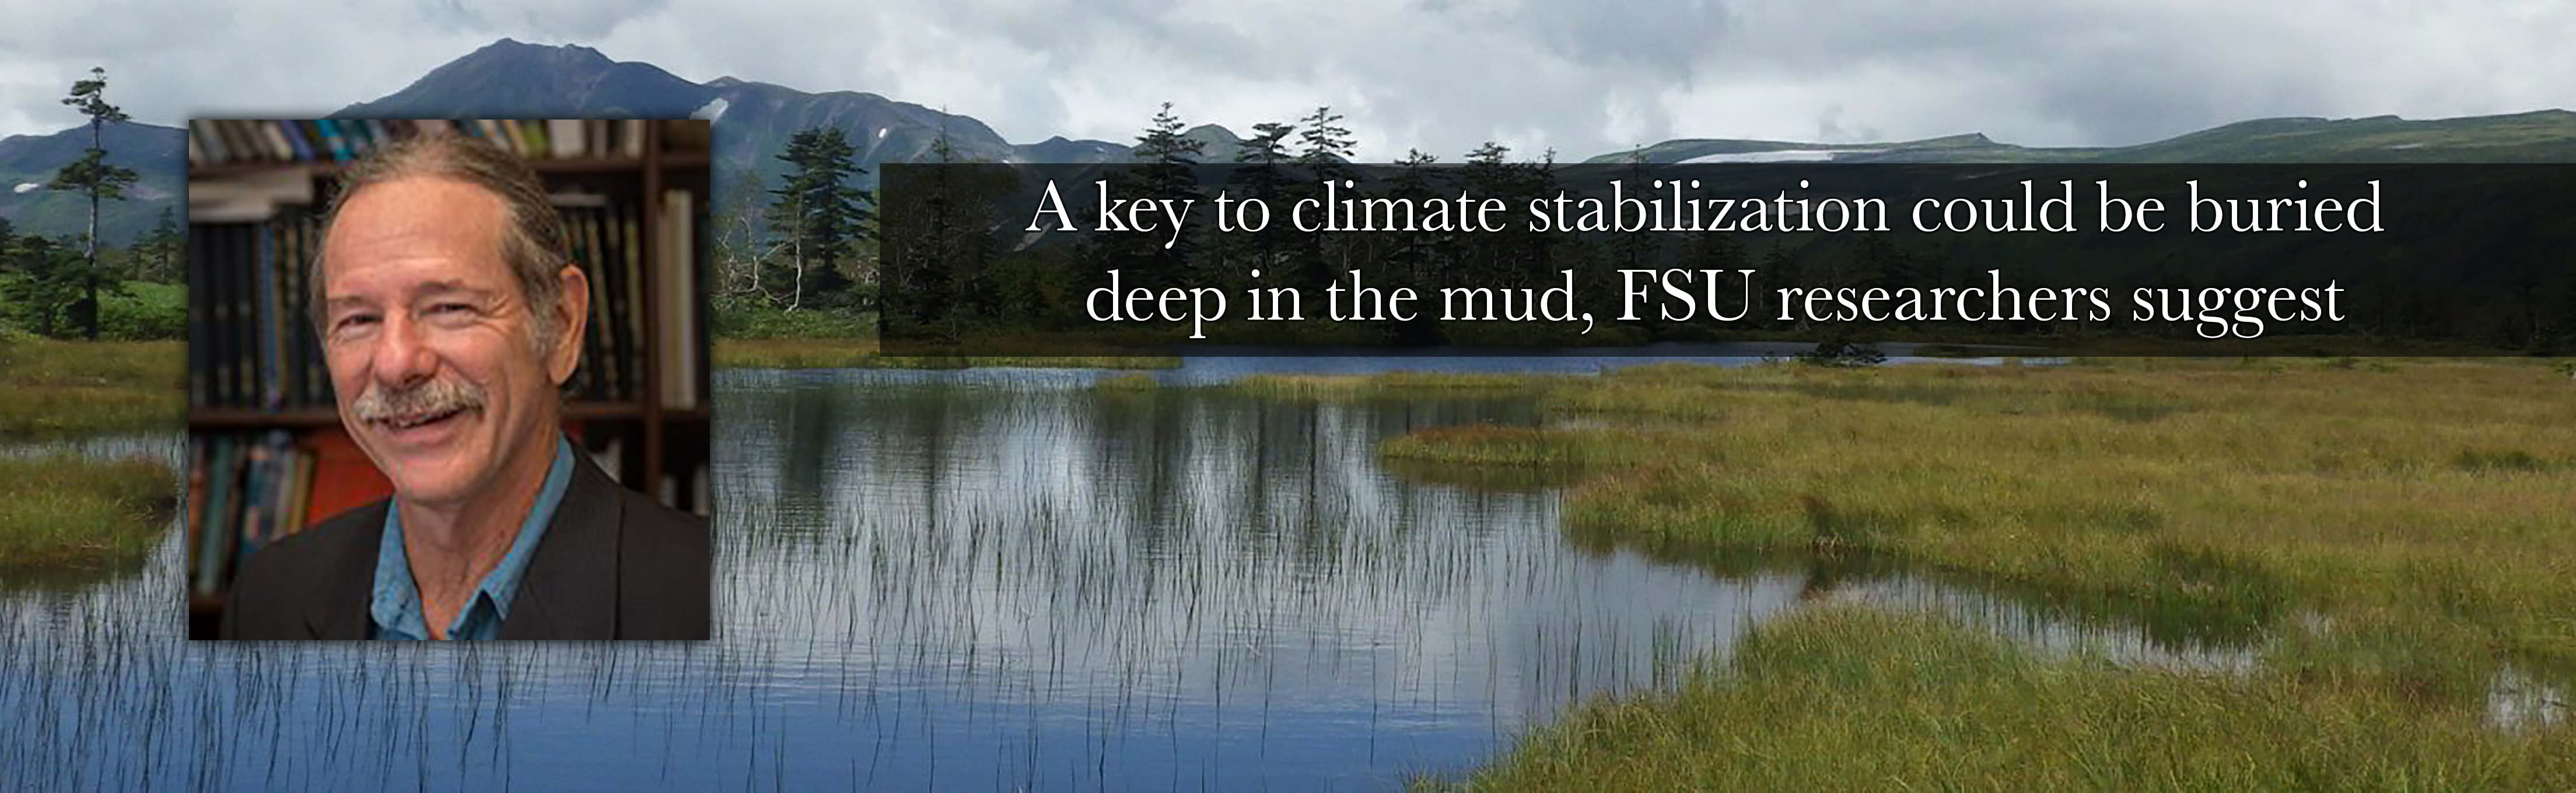 A key to climate stabilization could be buried deep in the mud, FSU researchers suggest